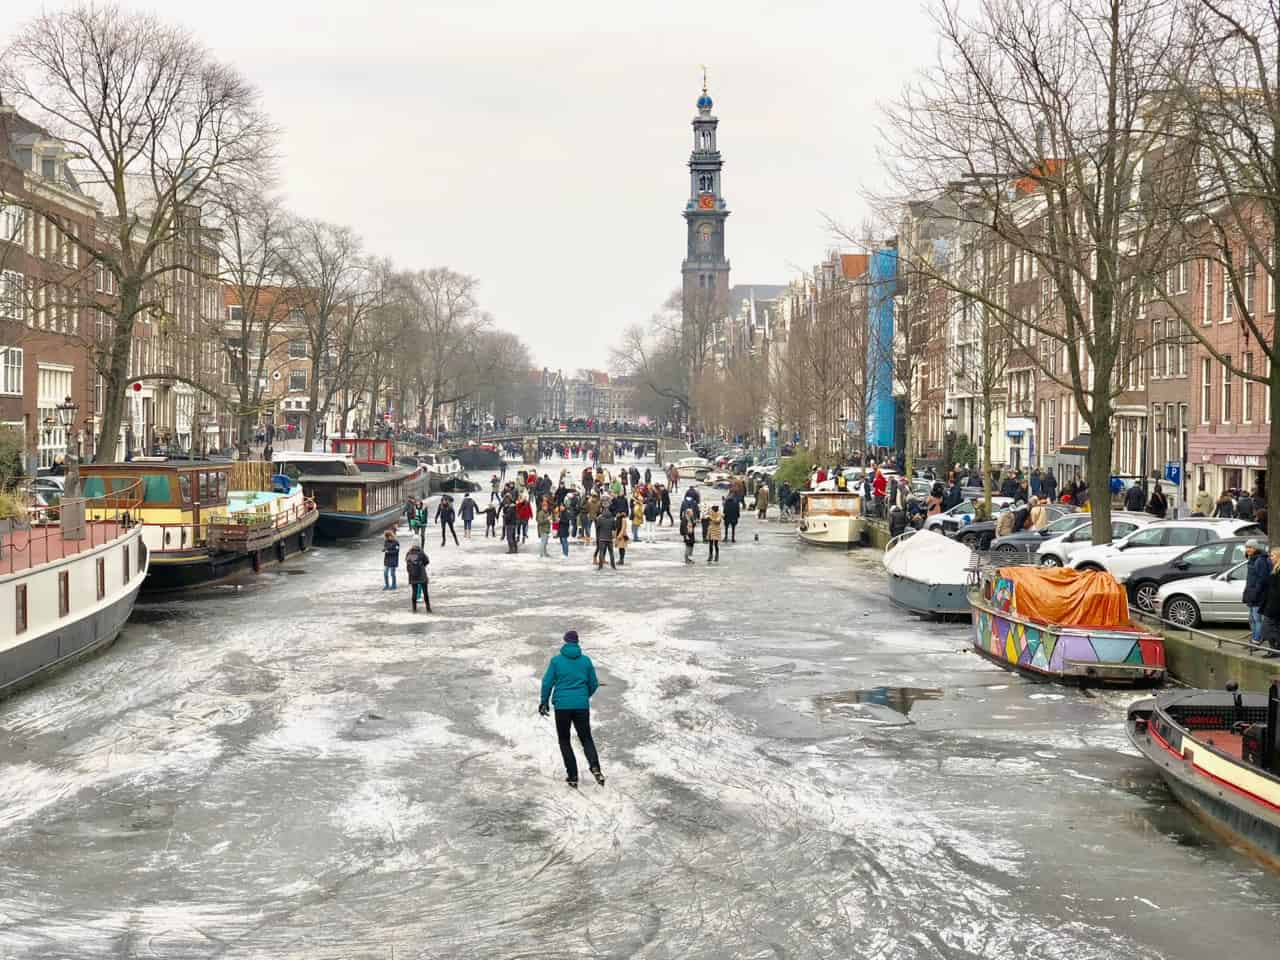 On the frozen canals of Amsterdam